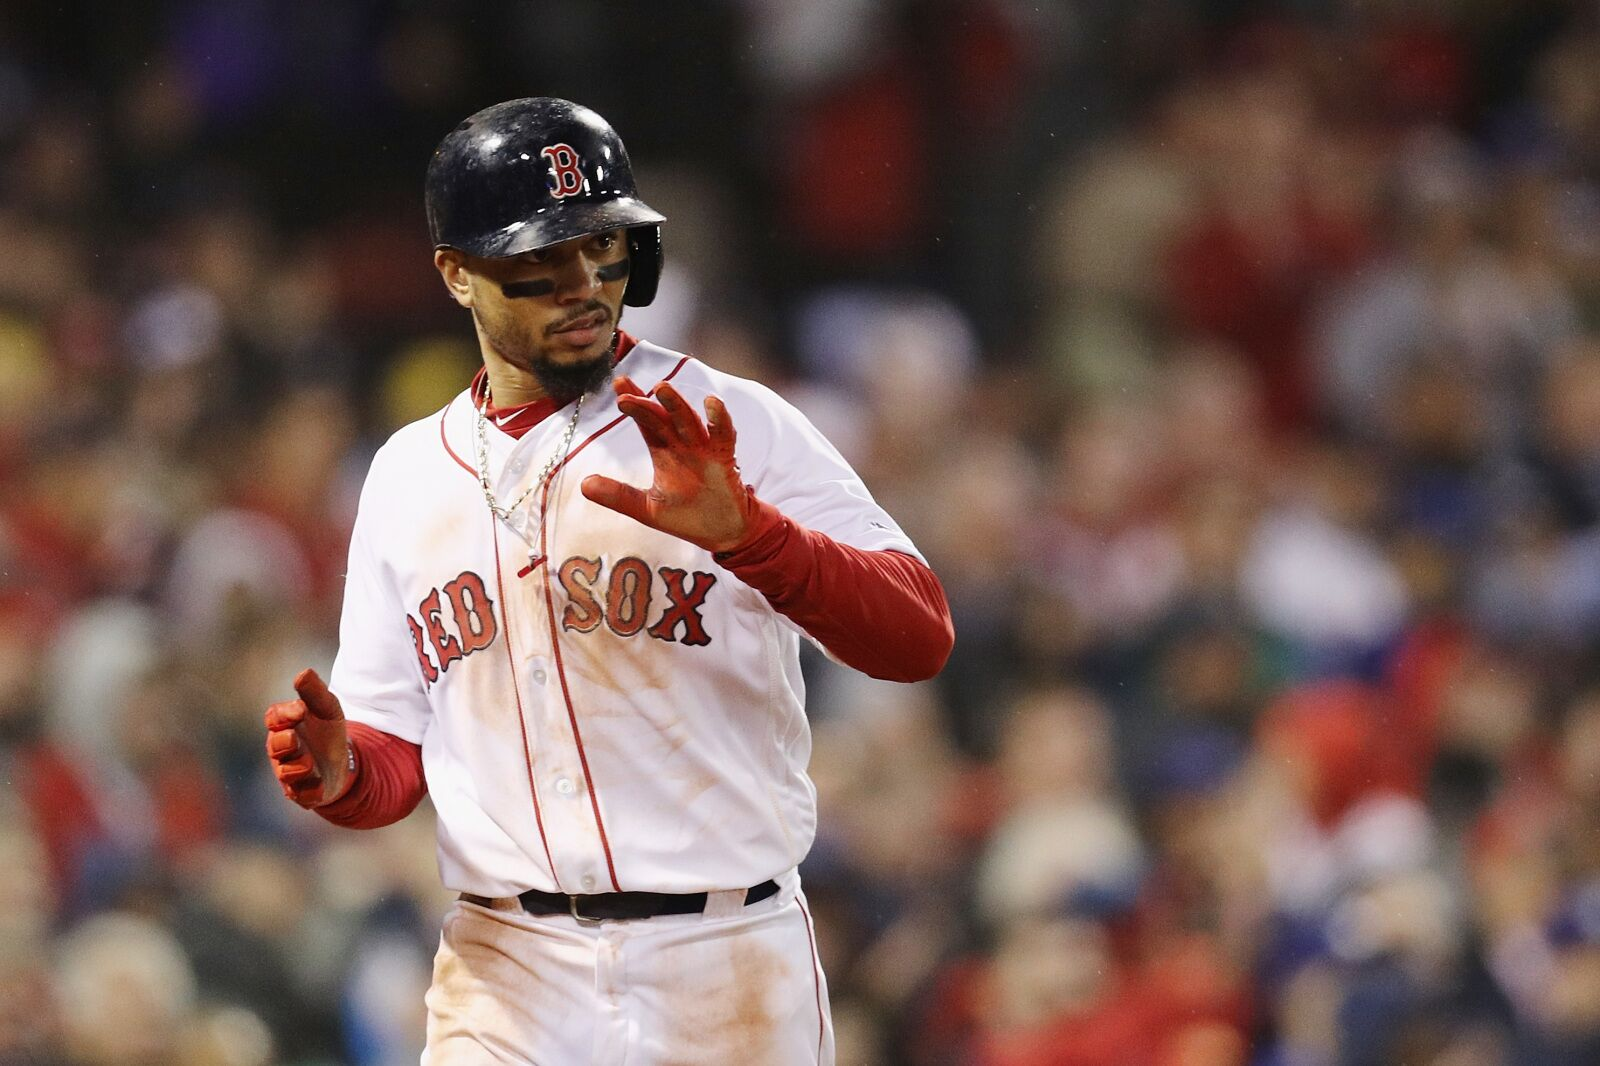 BOSTON, MA - OCTOBER 23: Mookie Betts #50 of the Boston Red Sox reacts after scoring a fifth inning run against the Los Angeles Dodgers in Game One of the 2018 World Series at Fenway Park on October 23, 2018 in Boston, Massachusetts. (Photo by Maddie Meyer/Getty Images)